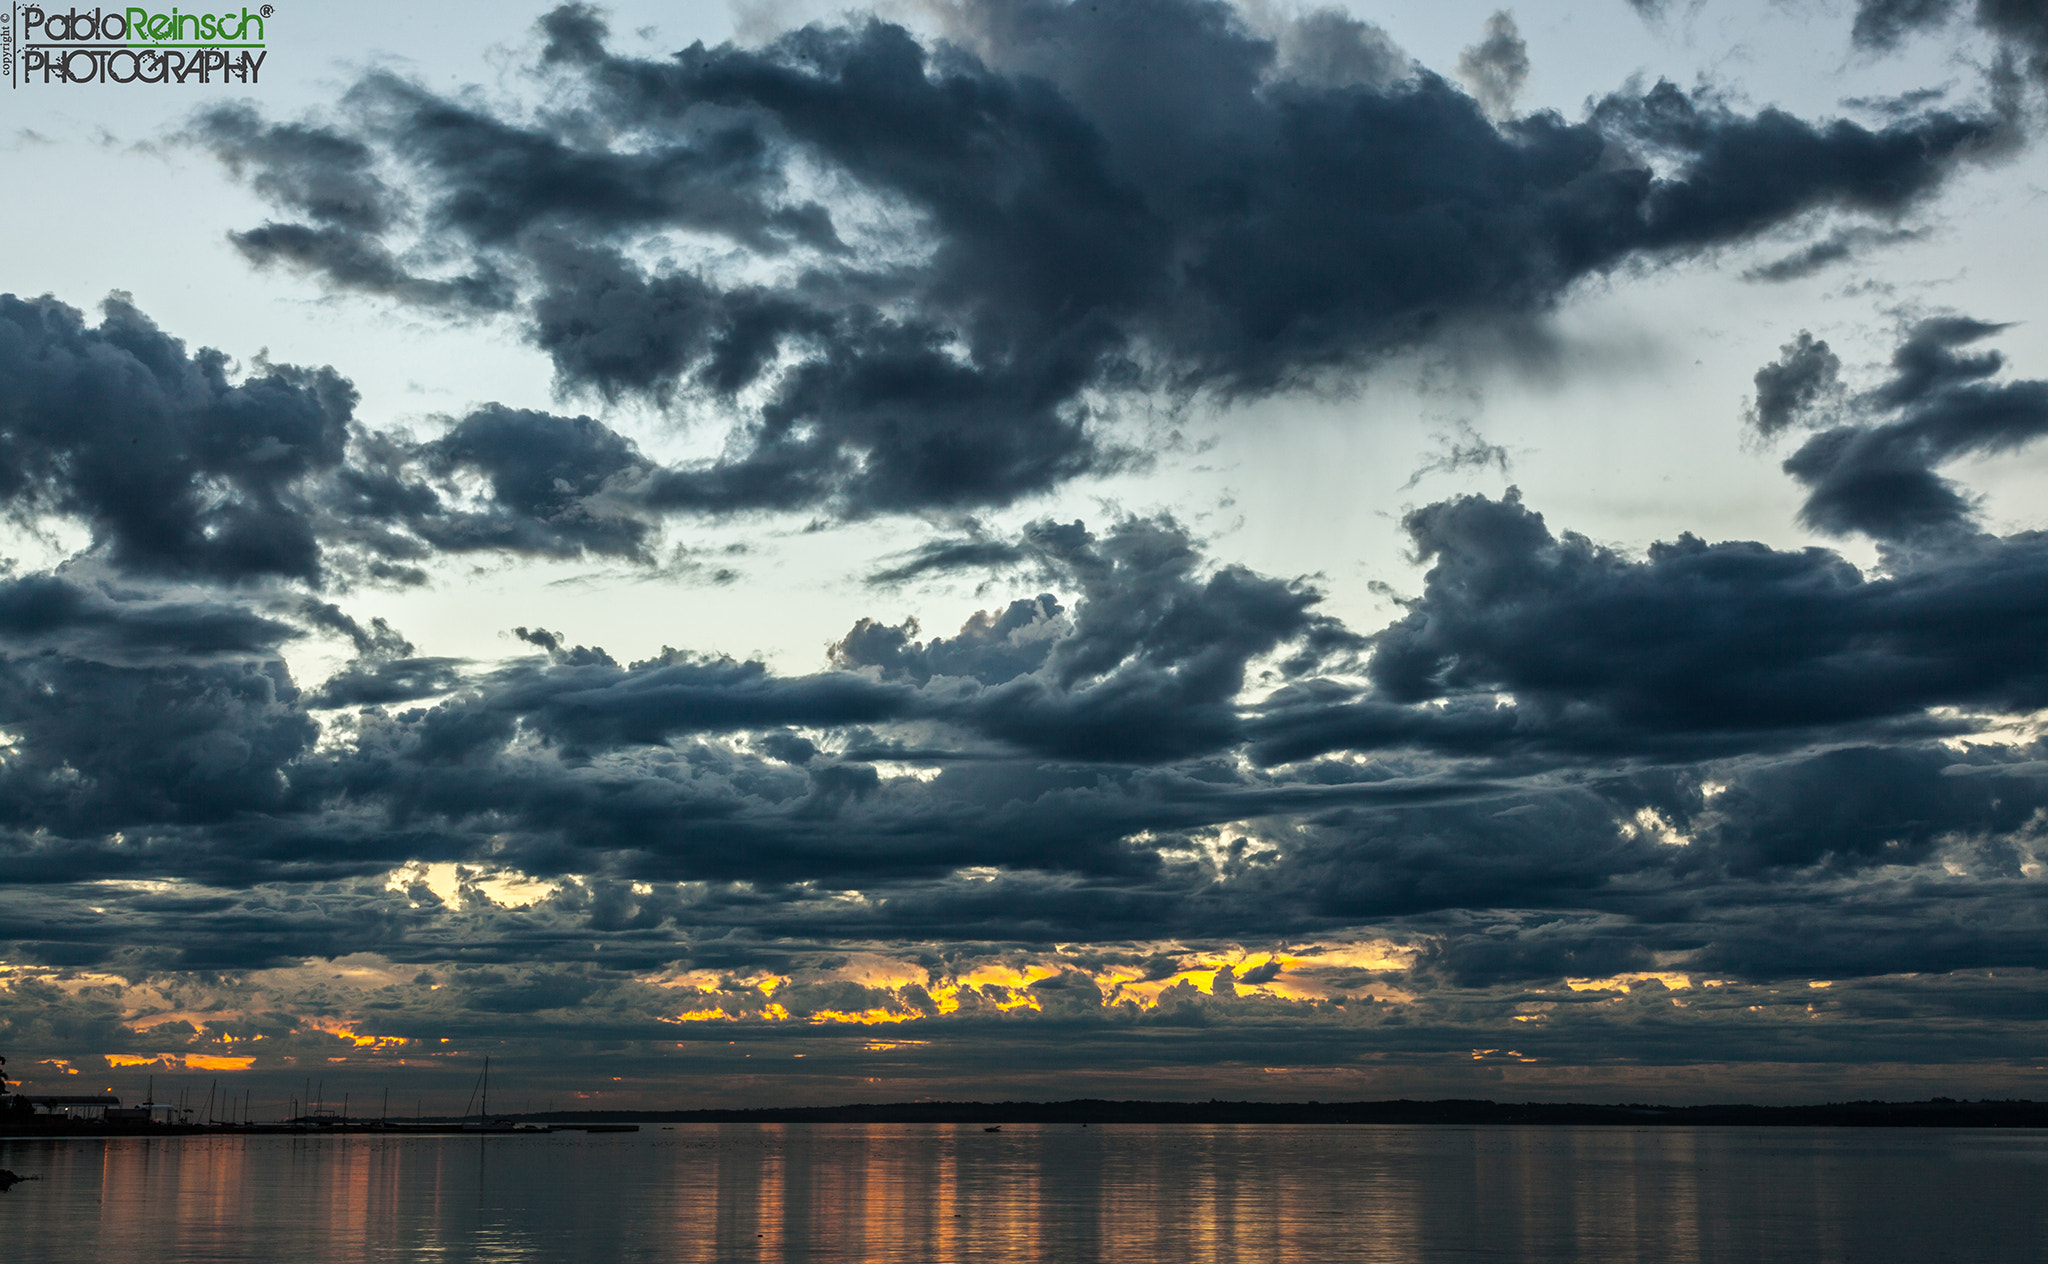 Photograph Scrambled clouds.- by Pablo Reinsch on 500px